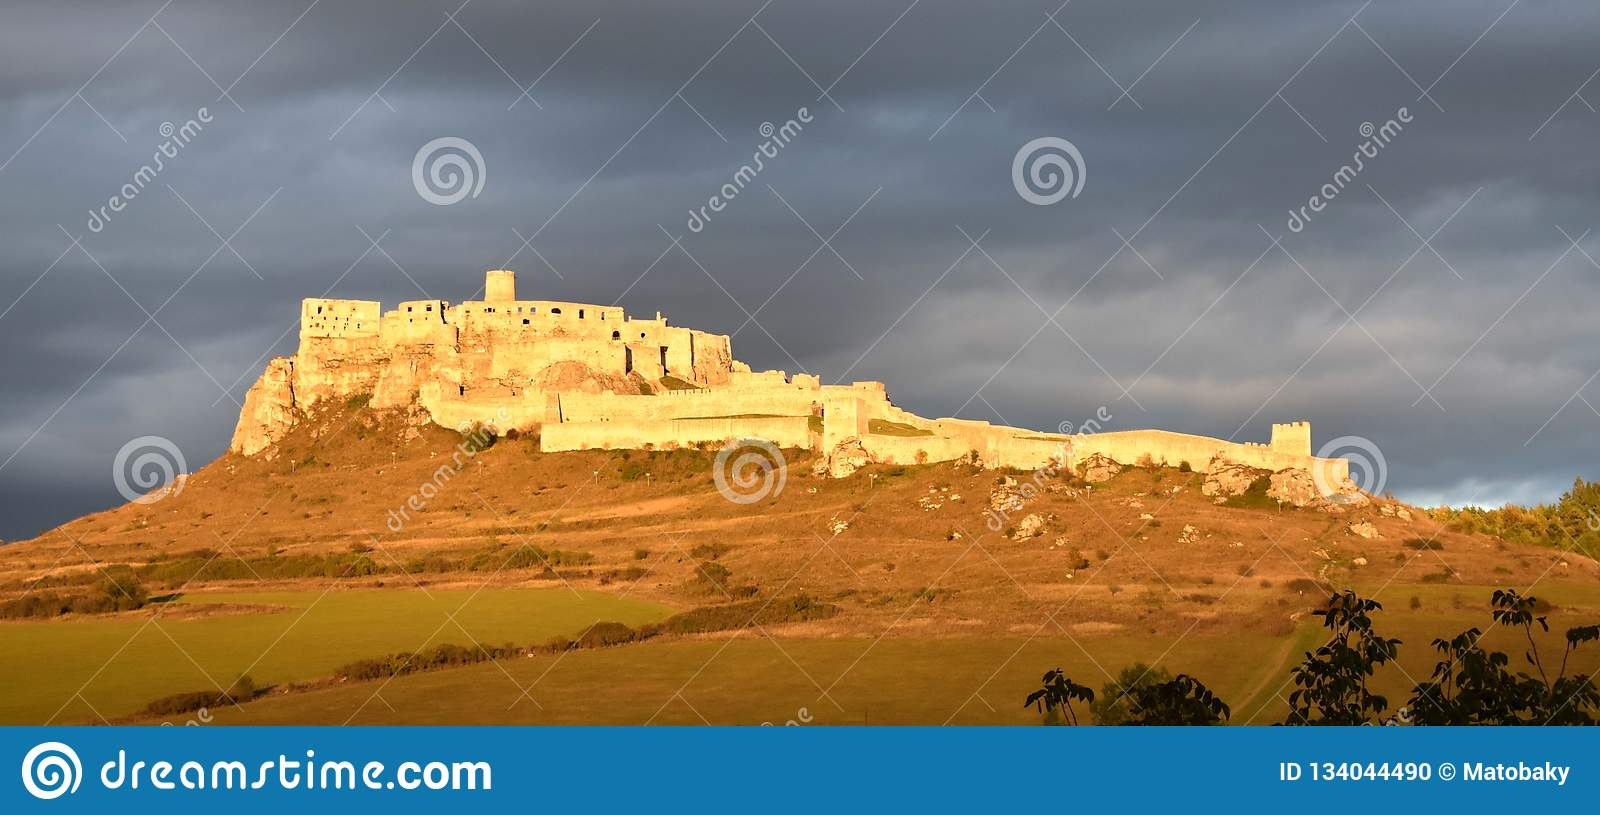 Spis castle in the red